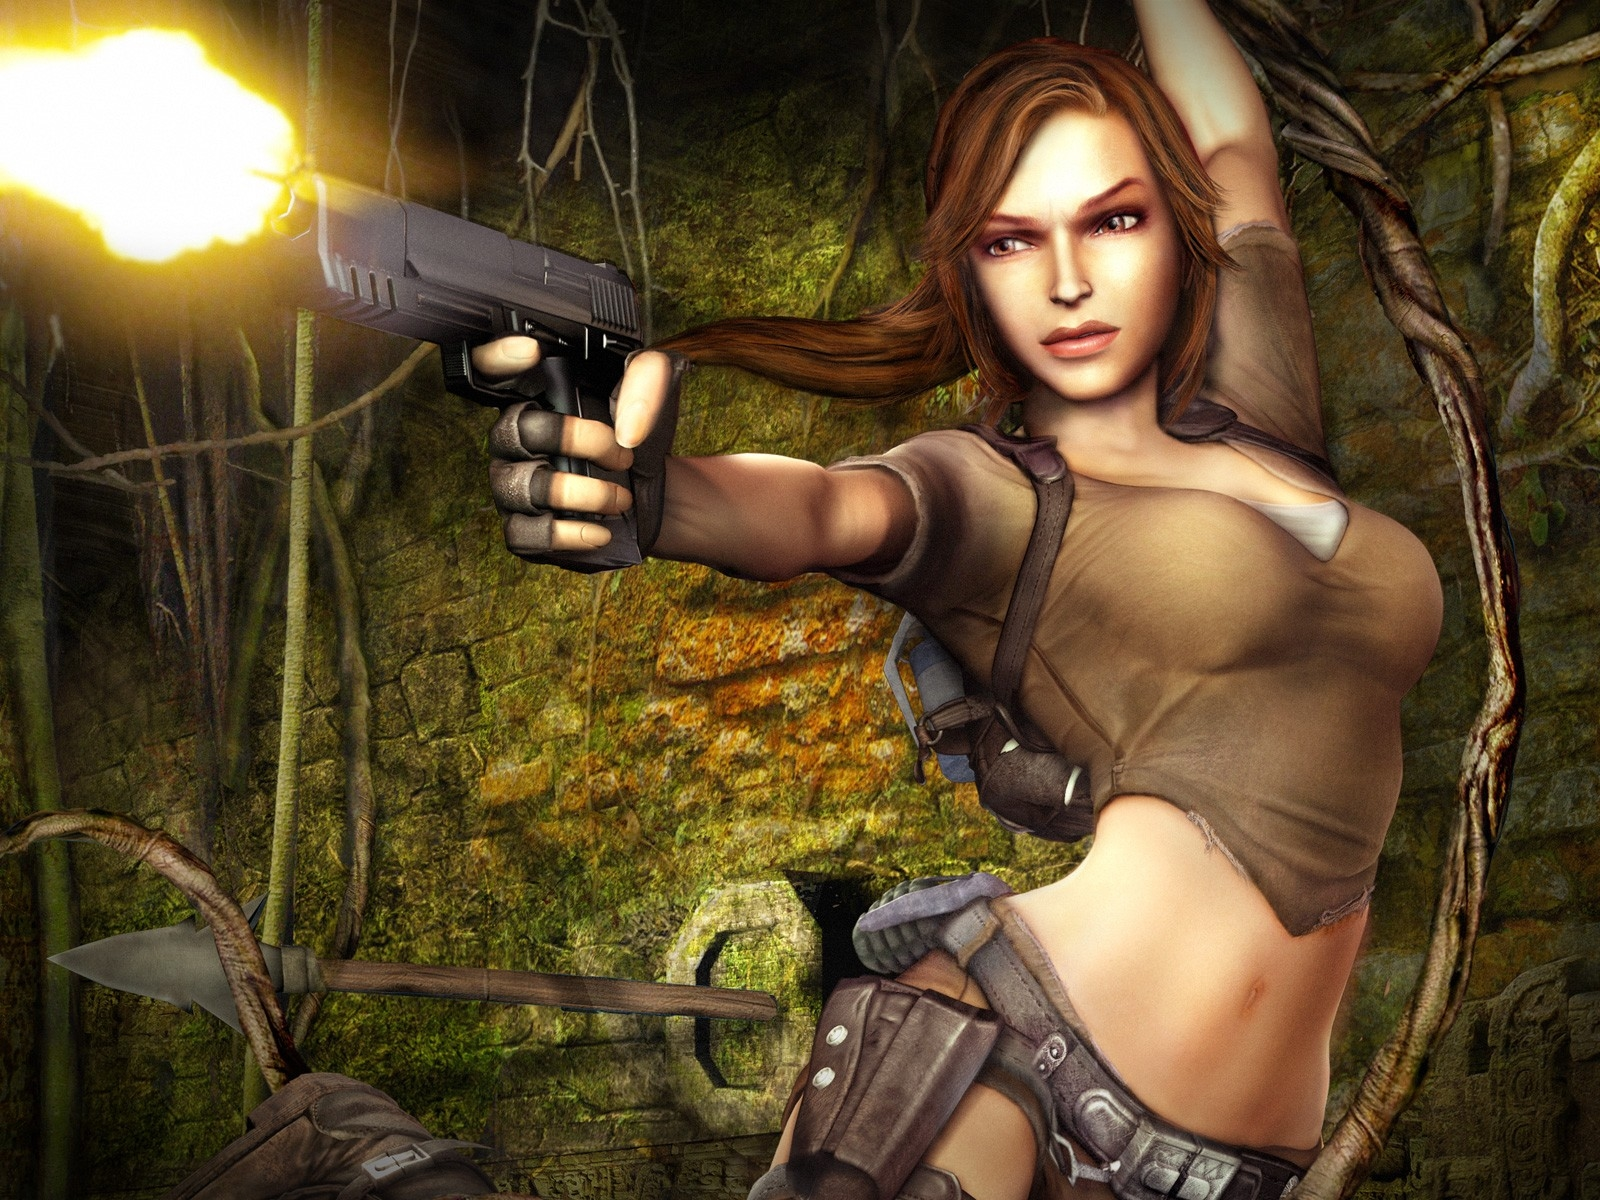 Cartoonmonster tomb raider anime images